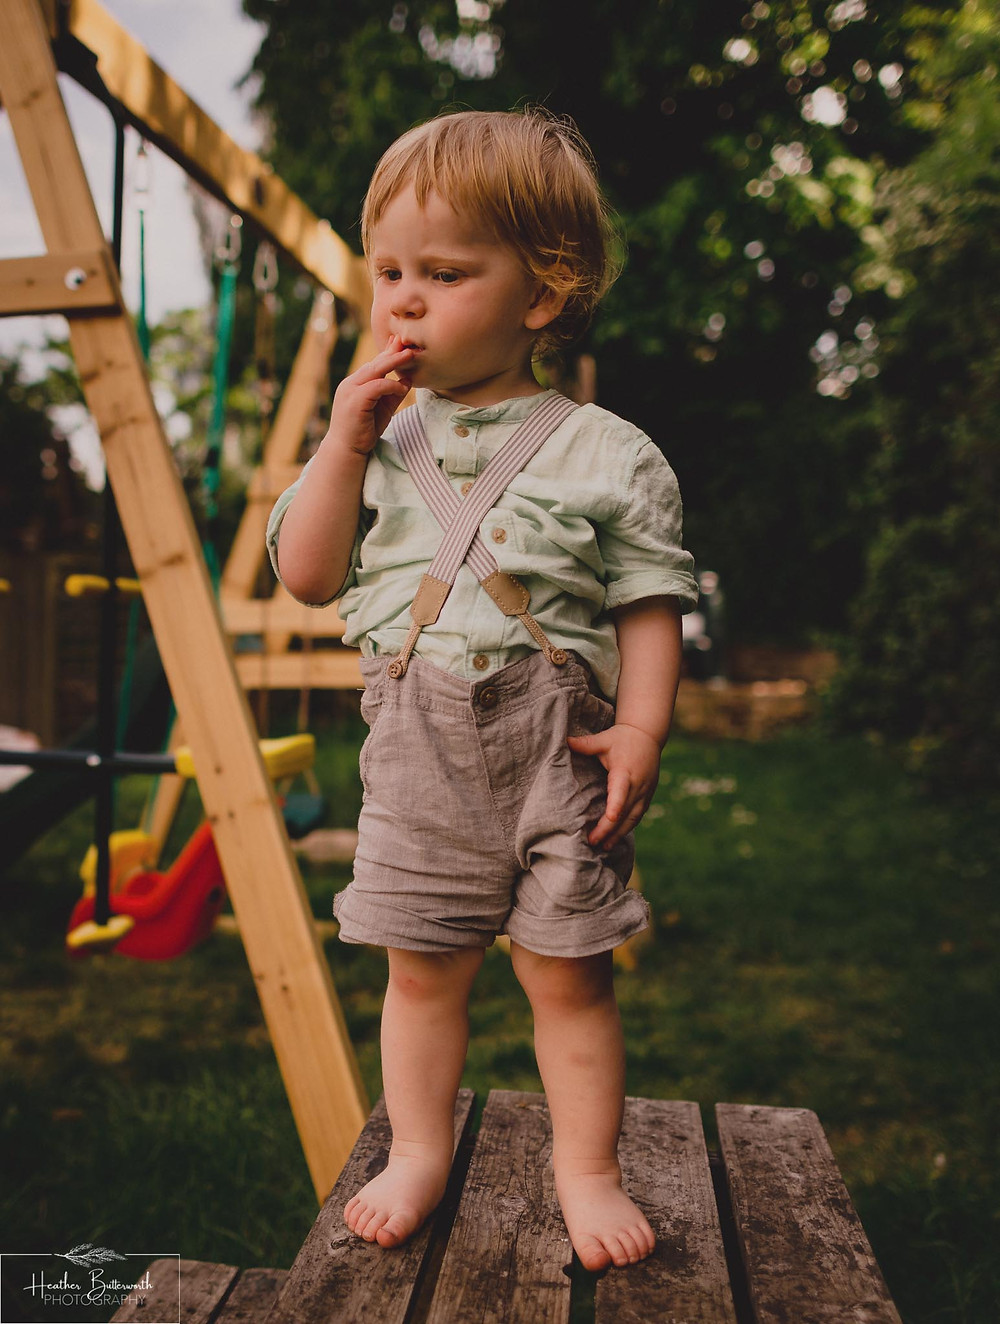 Son in the garden taken by Heather Butterworth during the COVID-19 pandemic in Leeds Yorkshire in May 2020